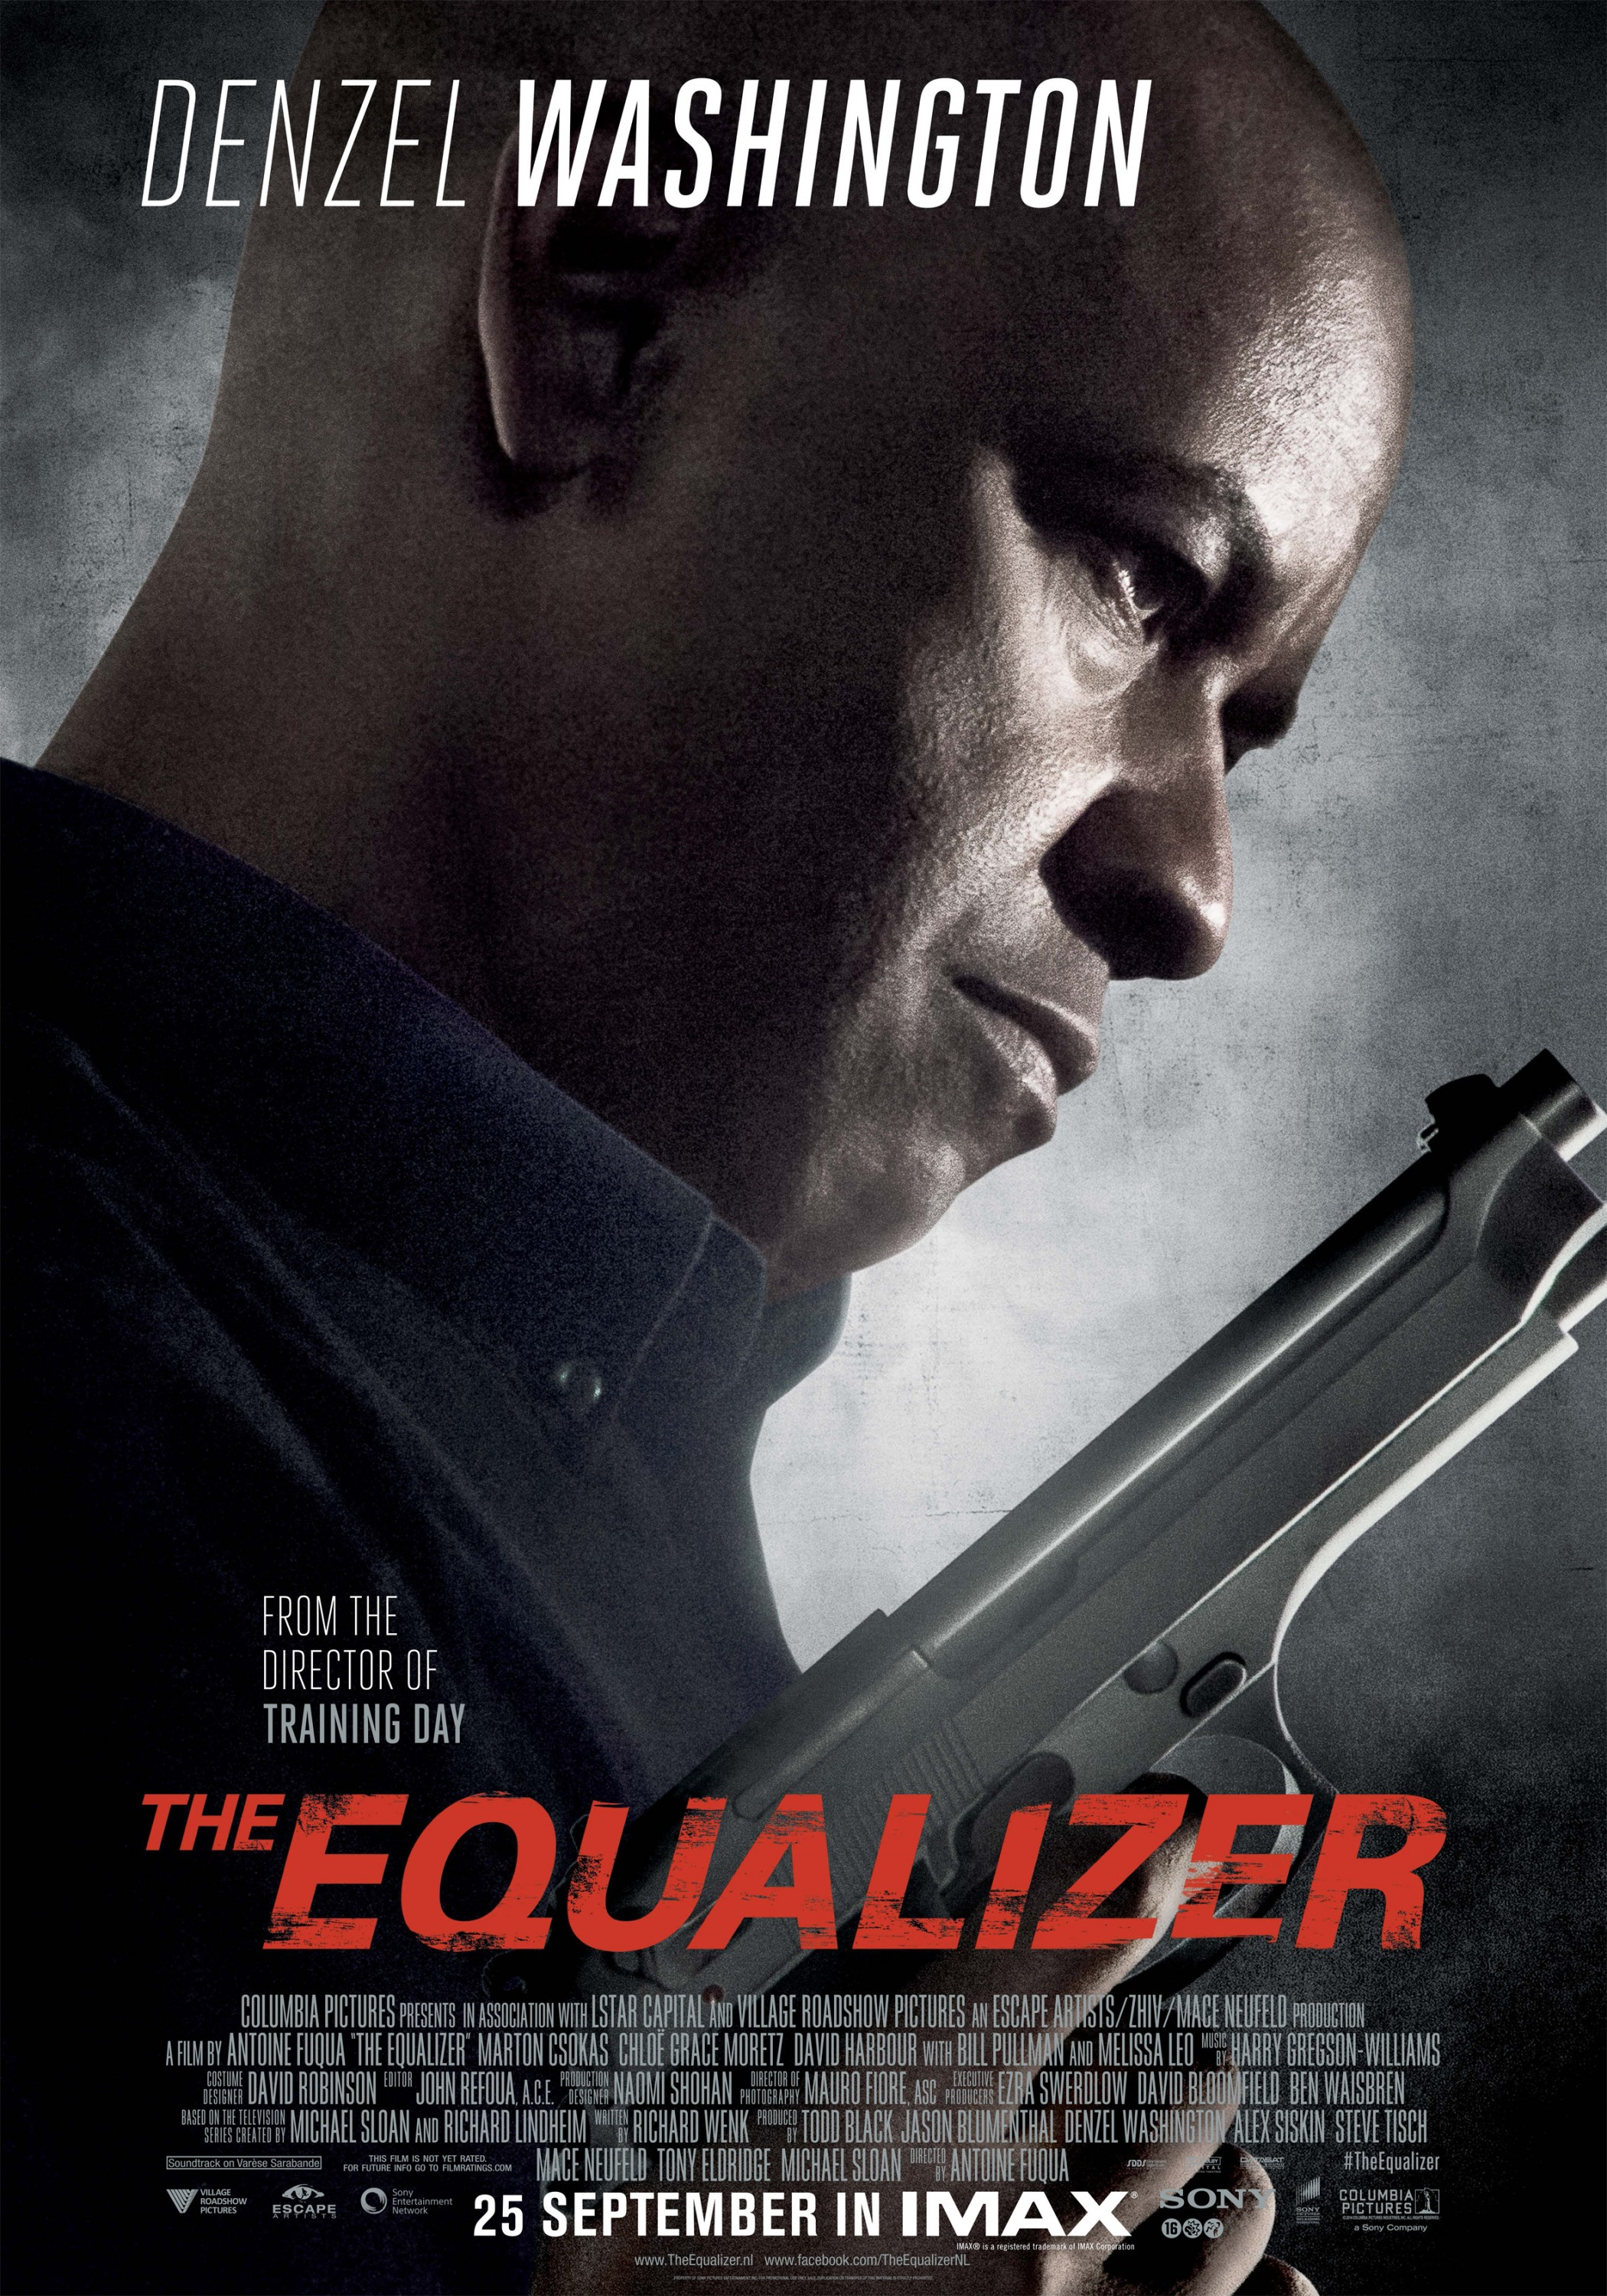 The Equalizer-Official Poster Banner PROMO XXLG-15JULHO2014